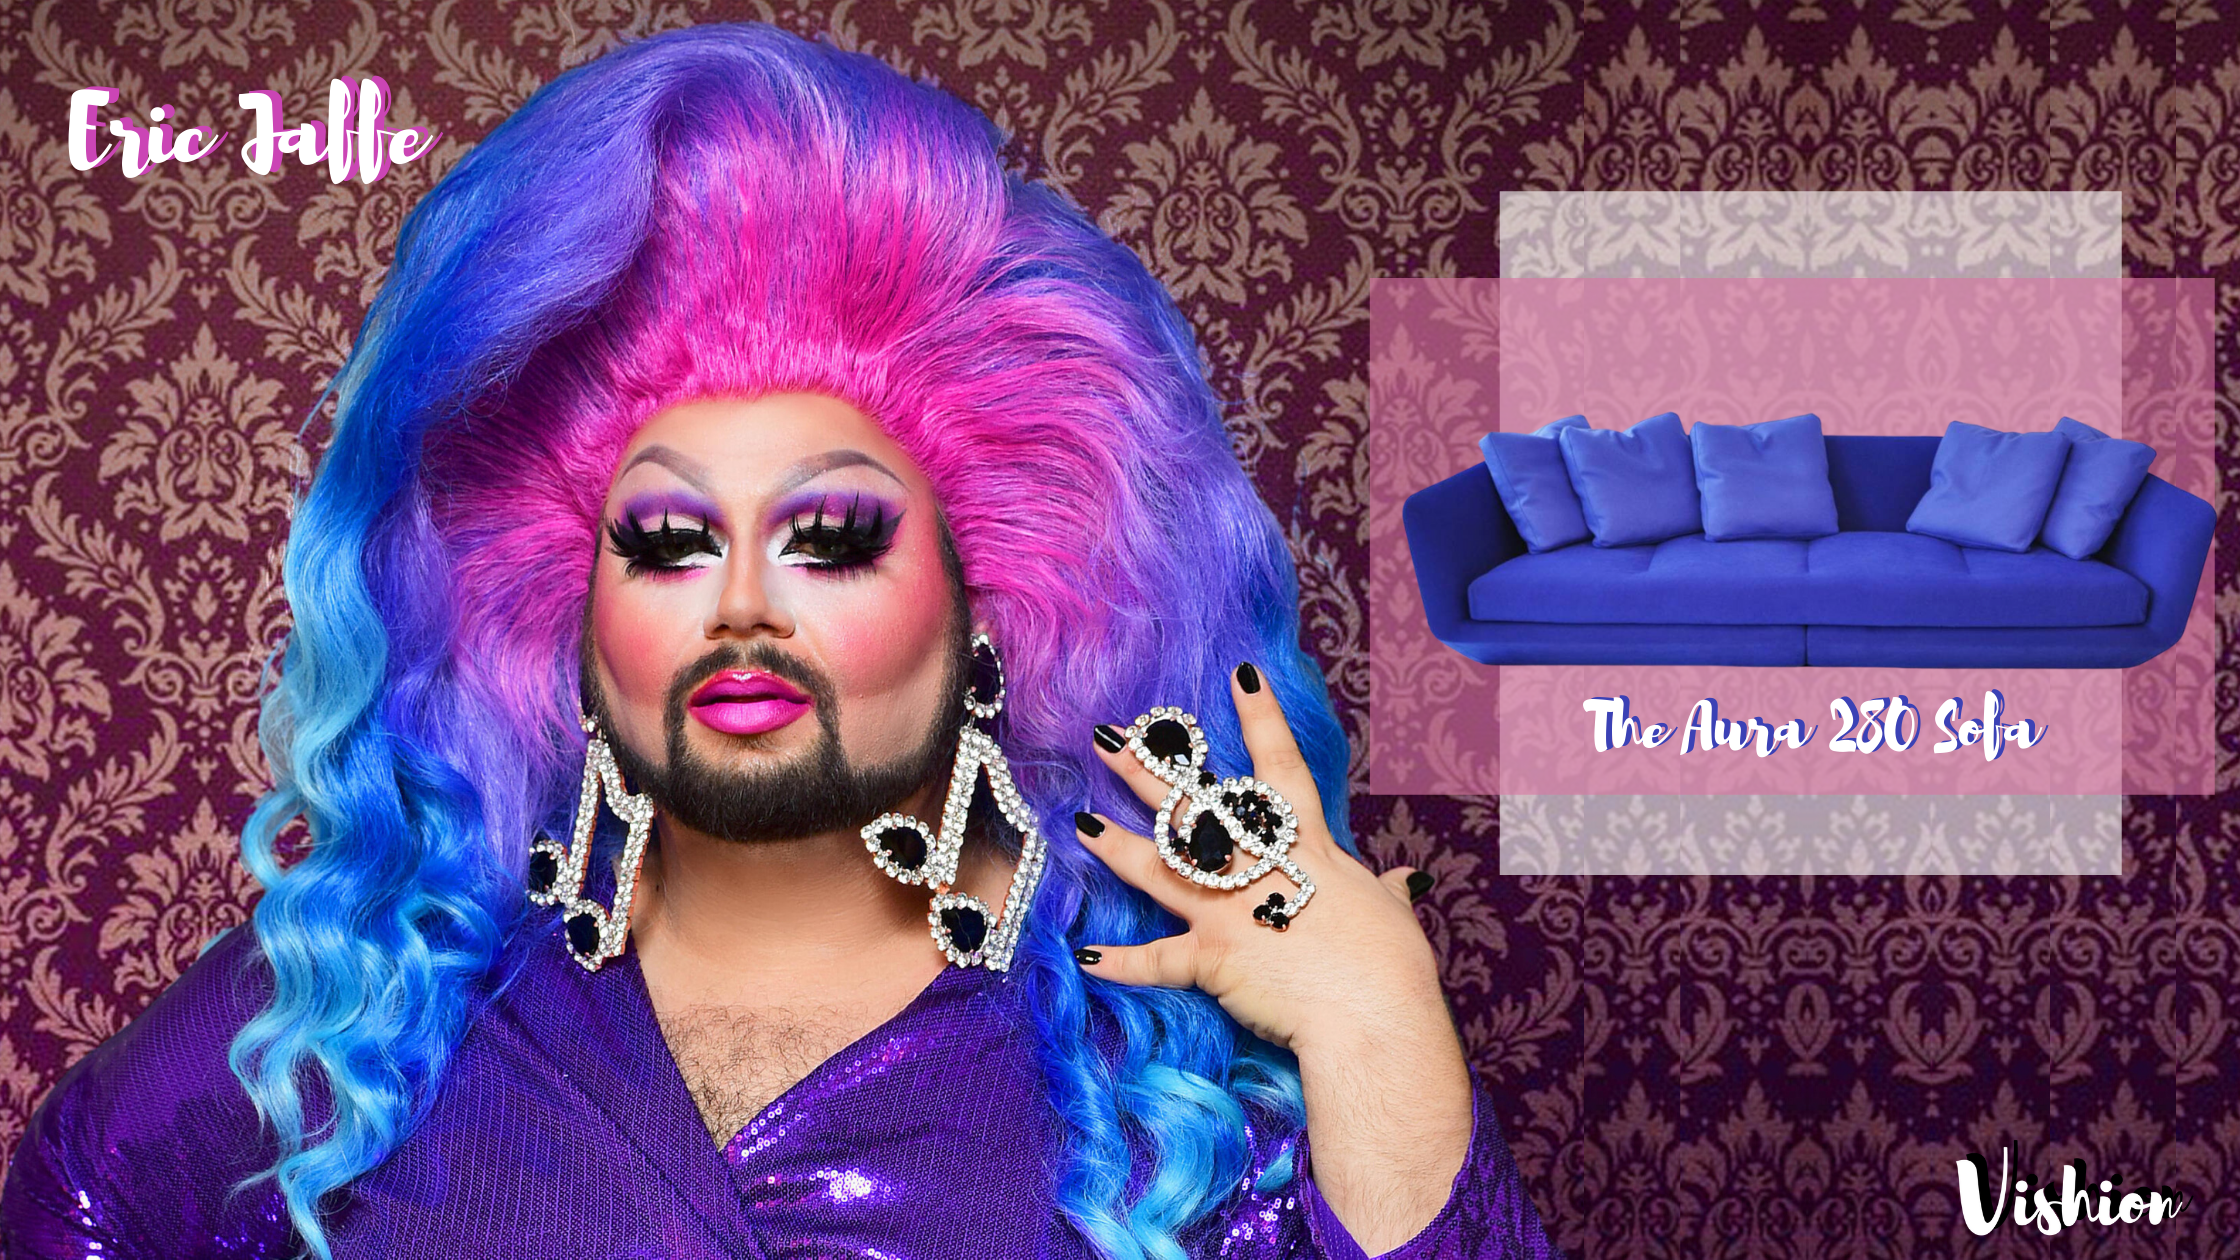 colorful drag Queen Eric Jaffe and the Aura 280 Sofa